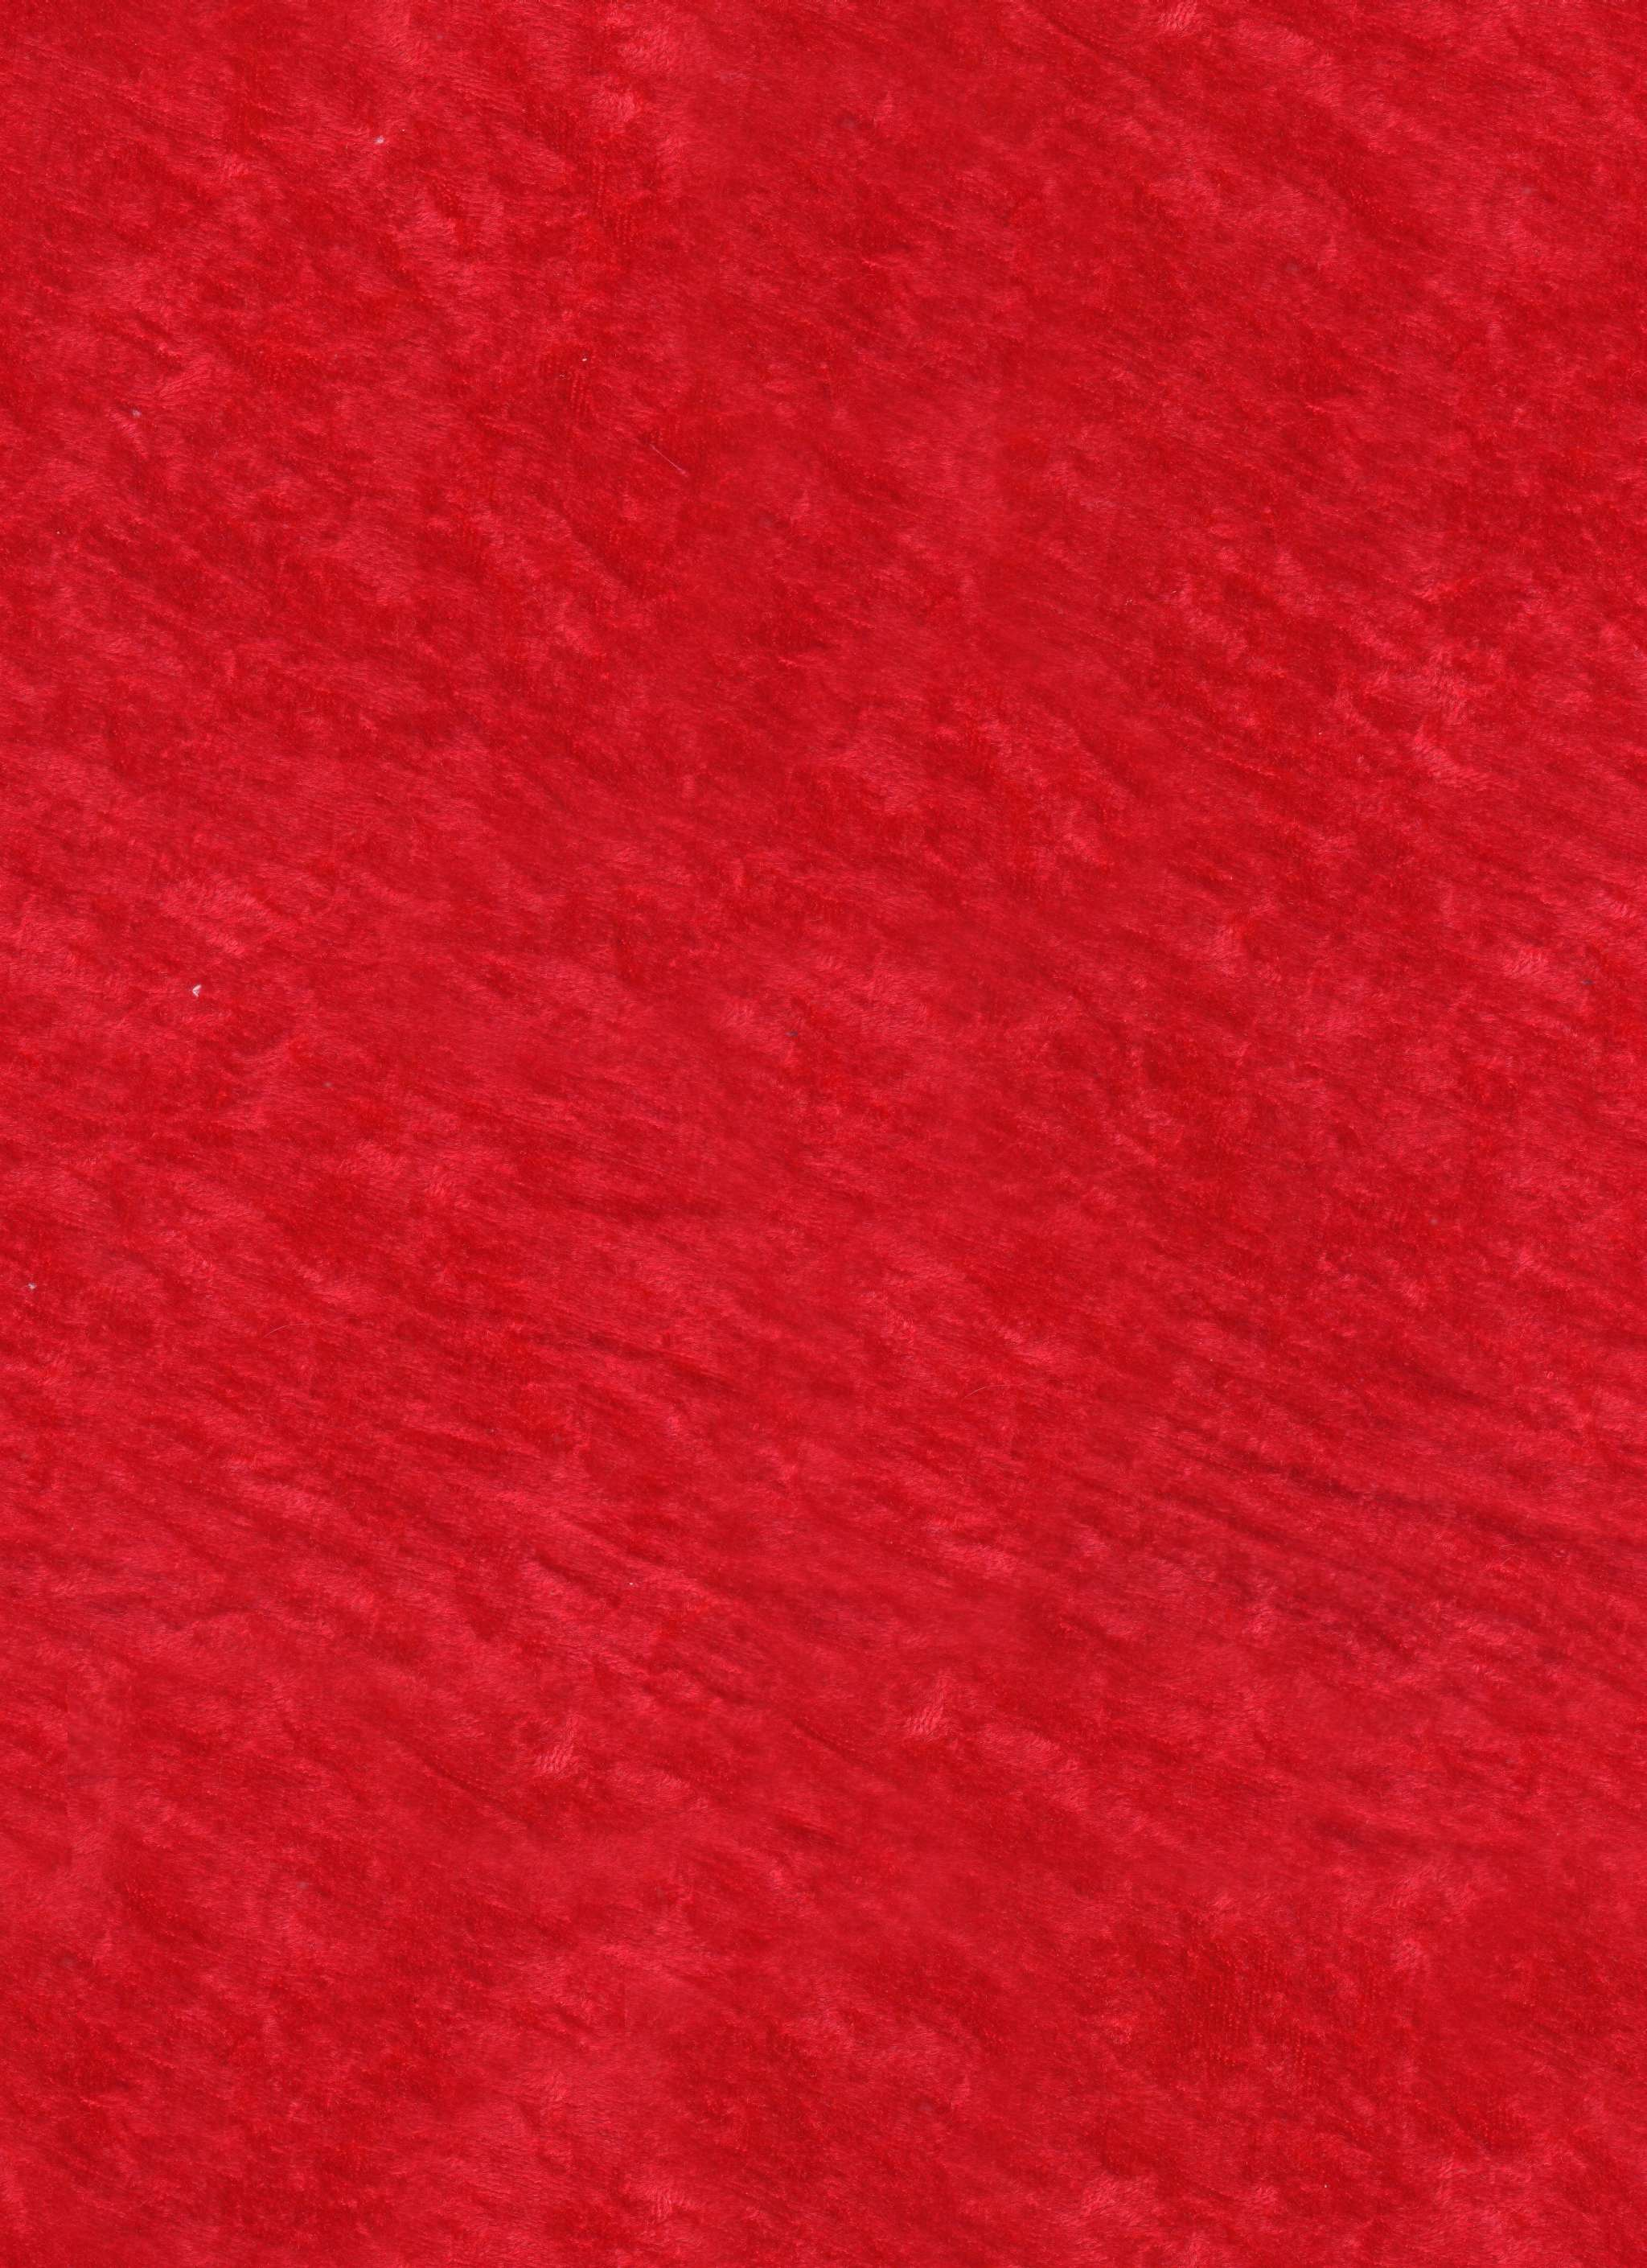 Fabric Velvet Red Seamless Texture With Normalmap